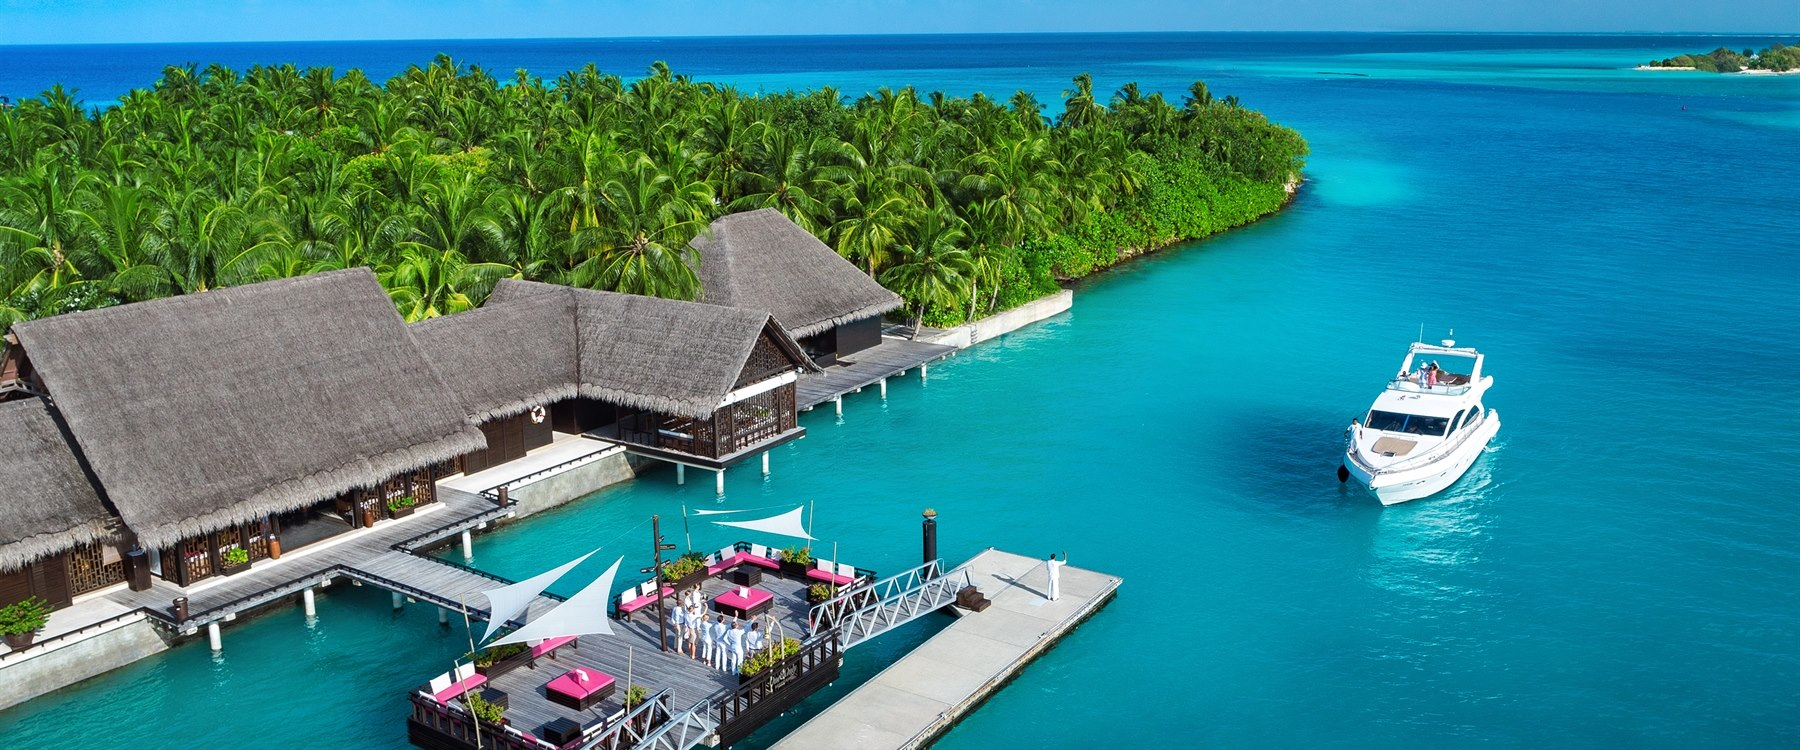 Arrival jetty at One&Only Reethi Rah, Maldives